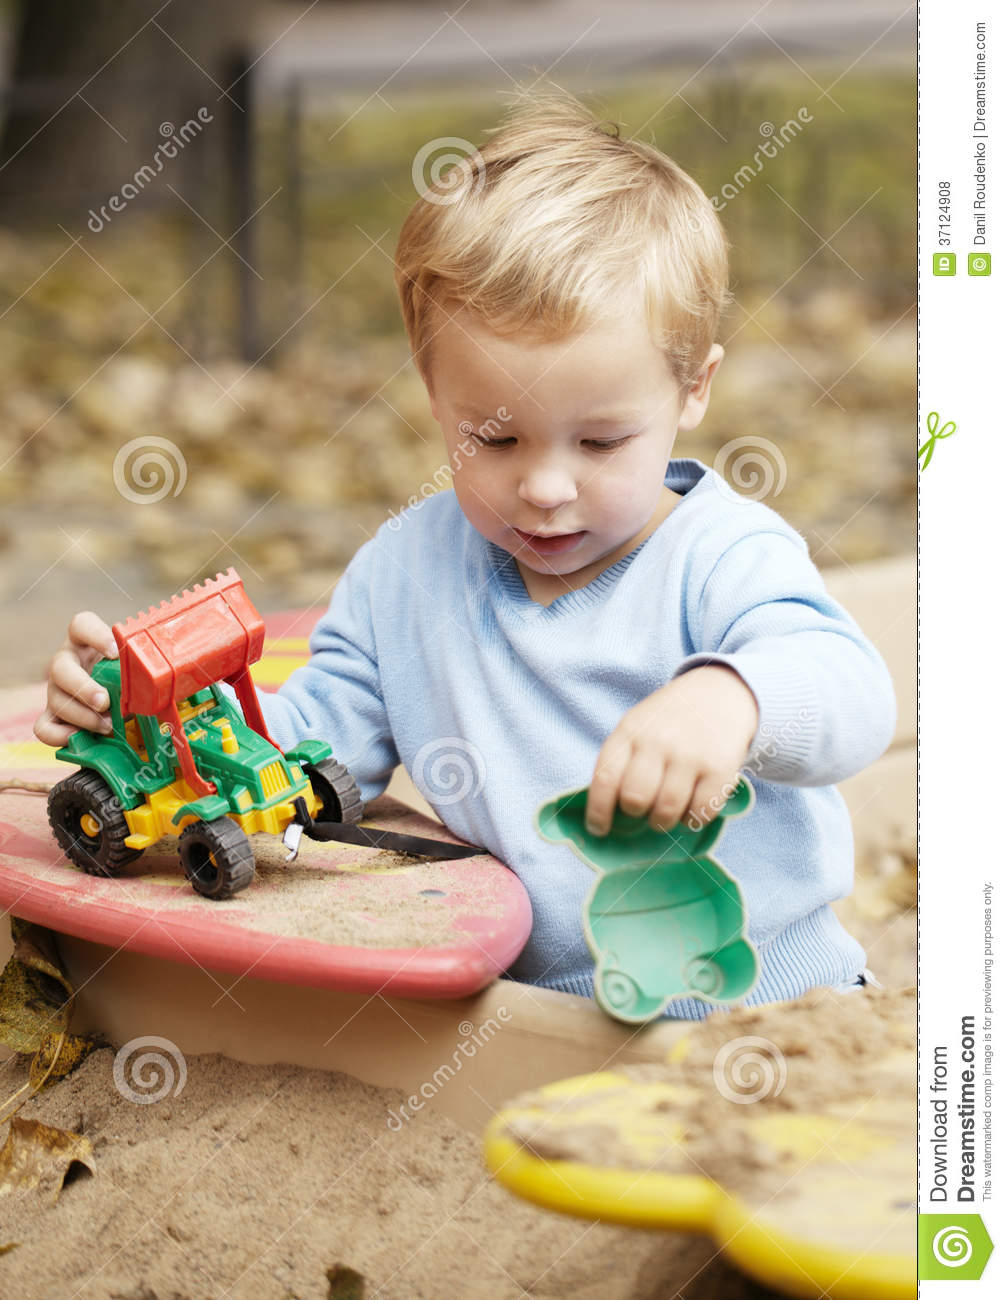 Hunting Toys For Little Boys : Boy playing with toy outdoor royalty free stock photos